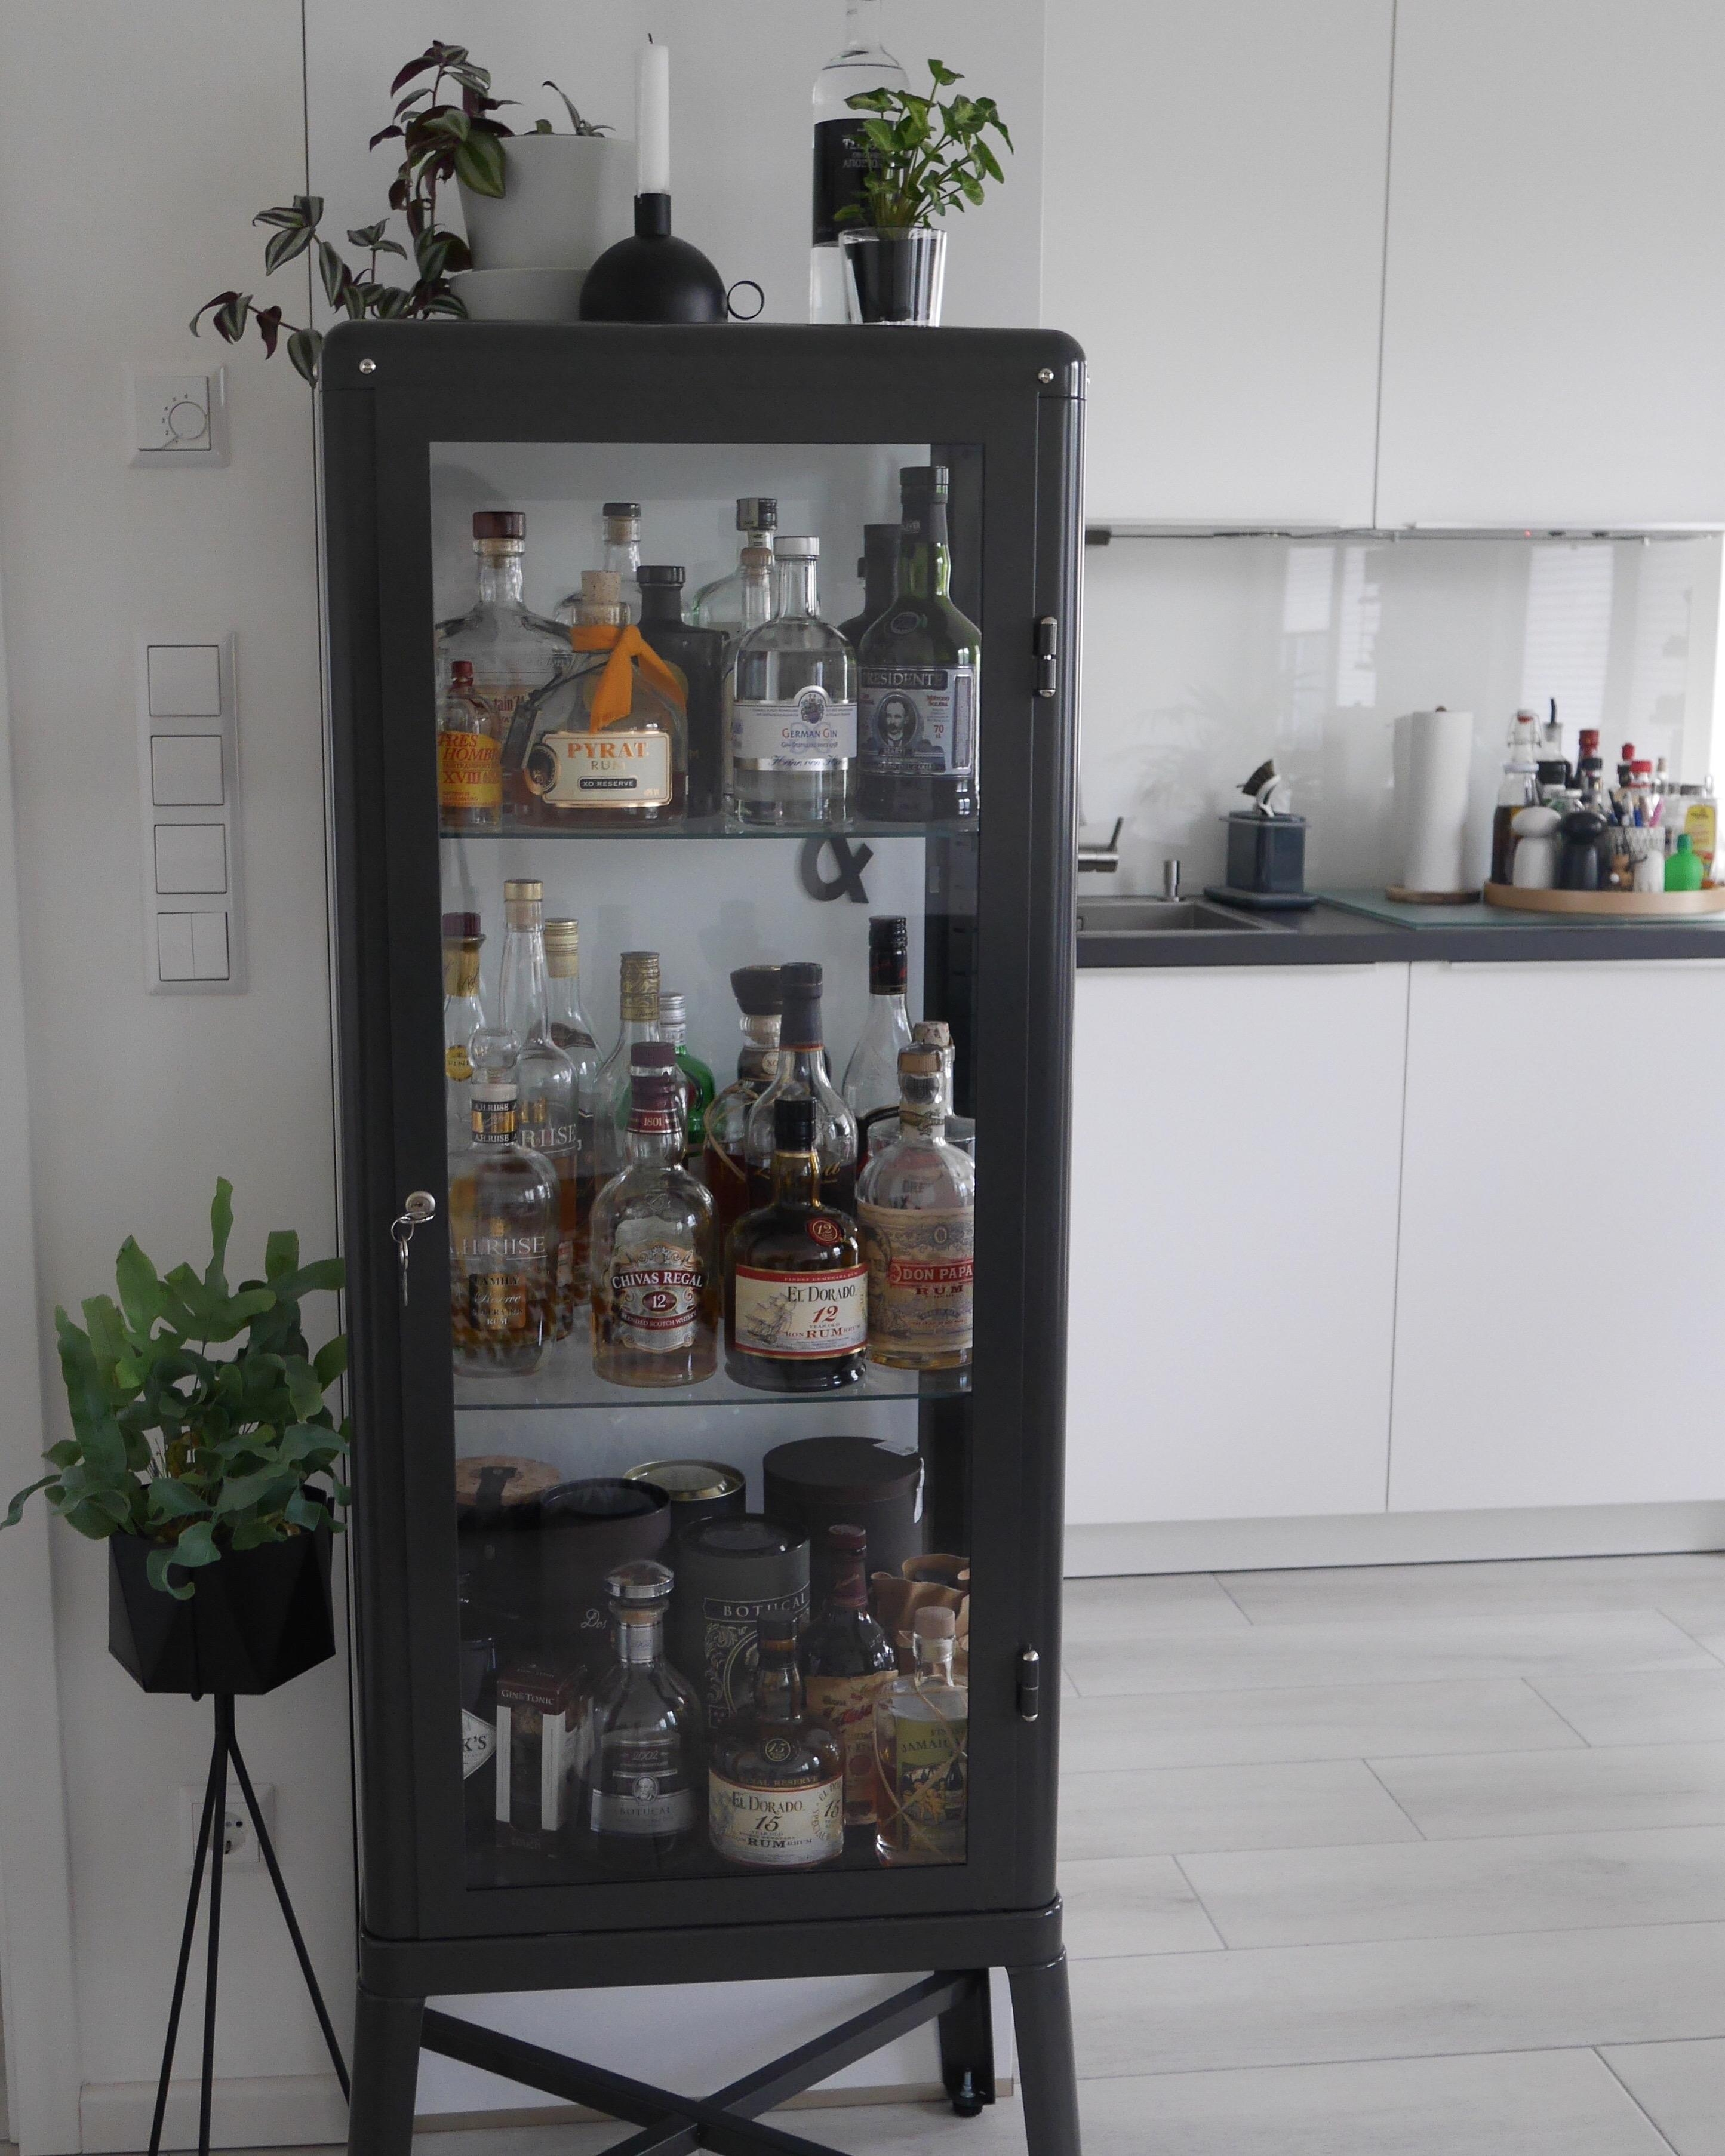 Unsere kleine Housebar! #houdebar #kitchen #livingroom #interiordesign #blackandwhite